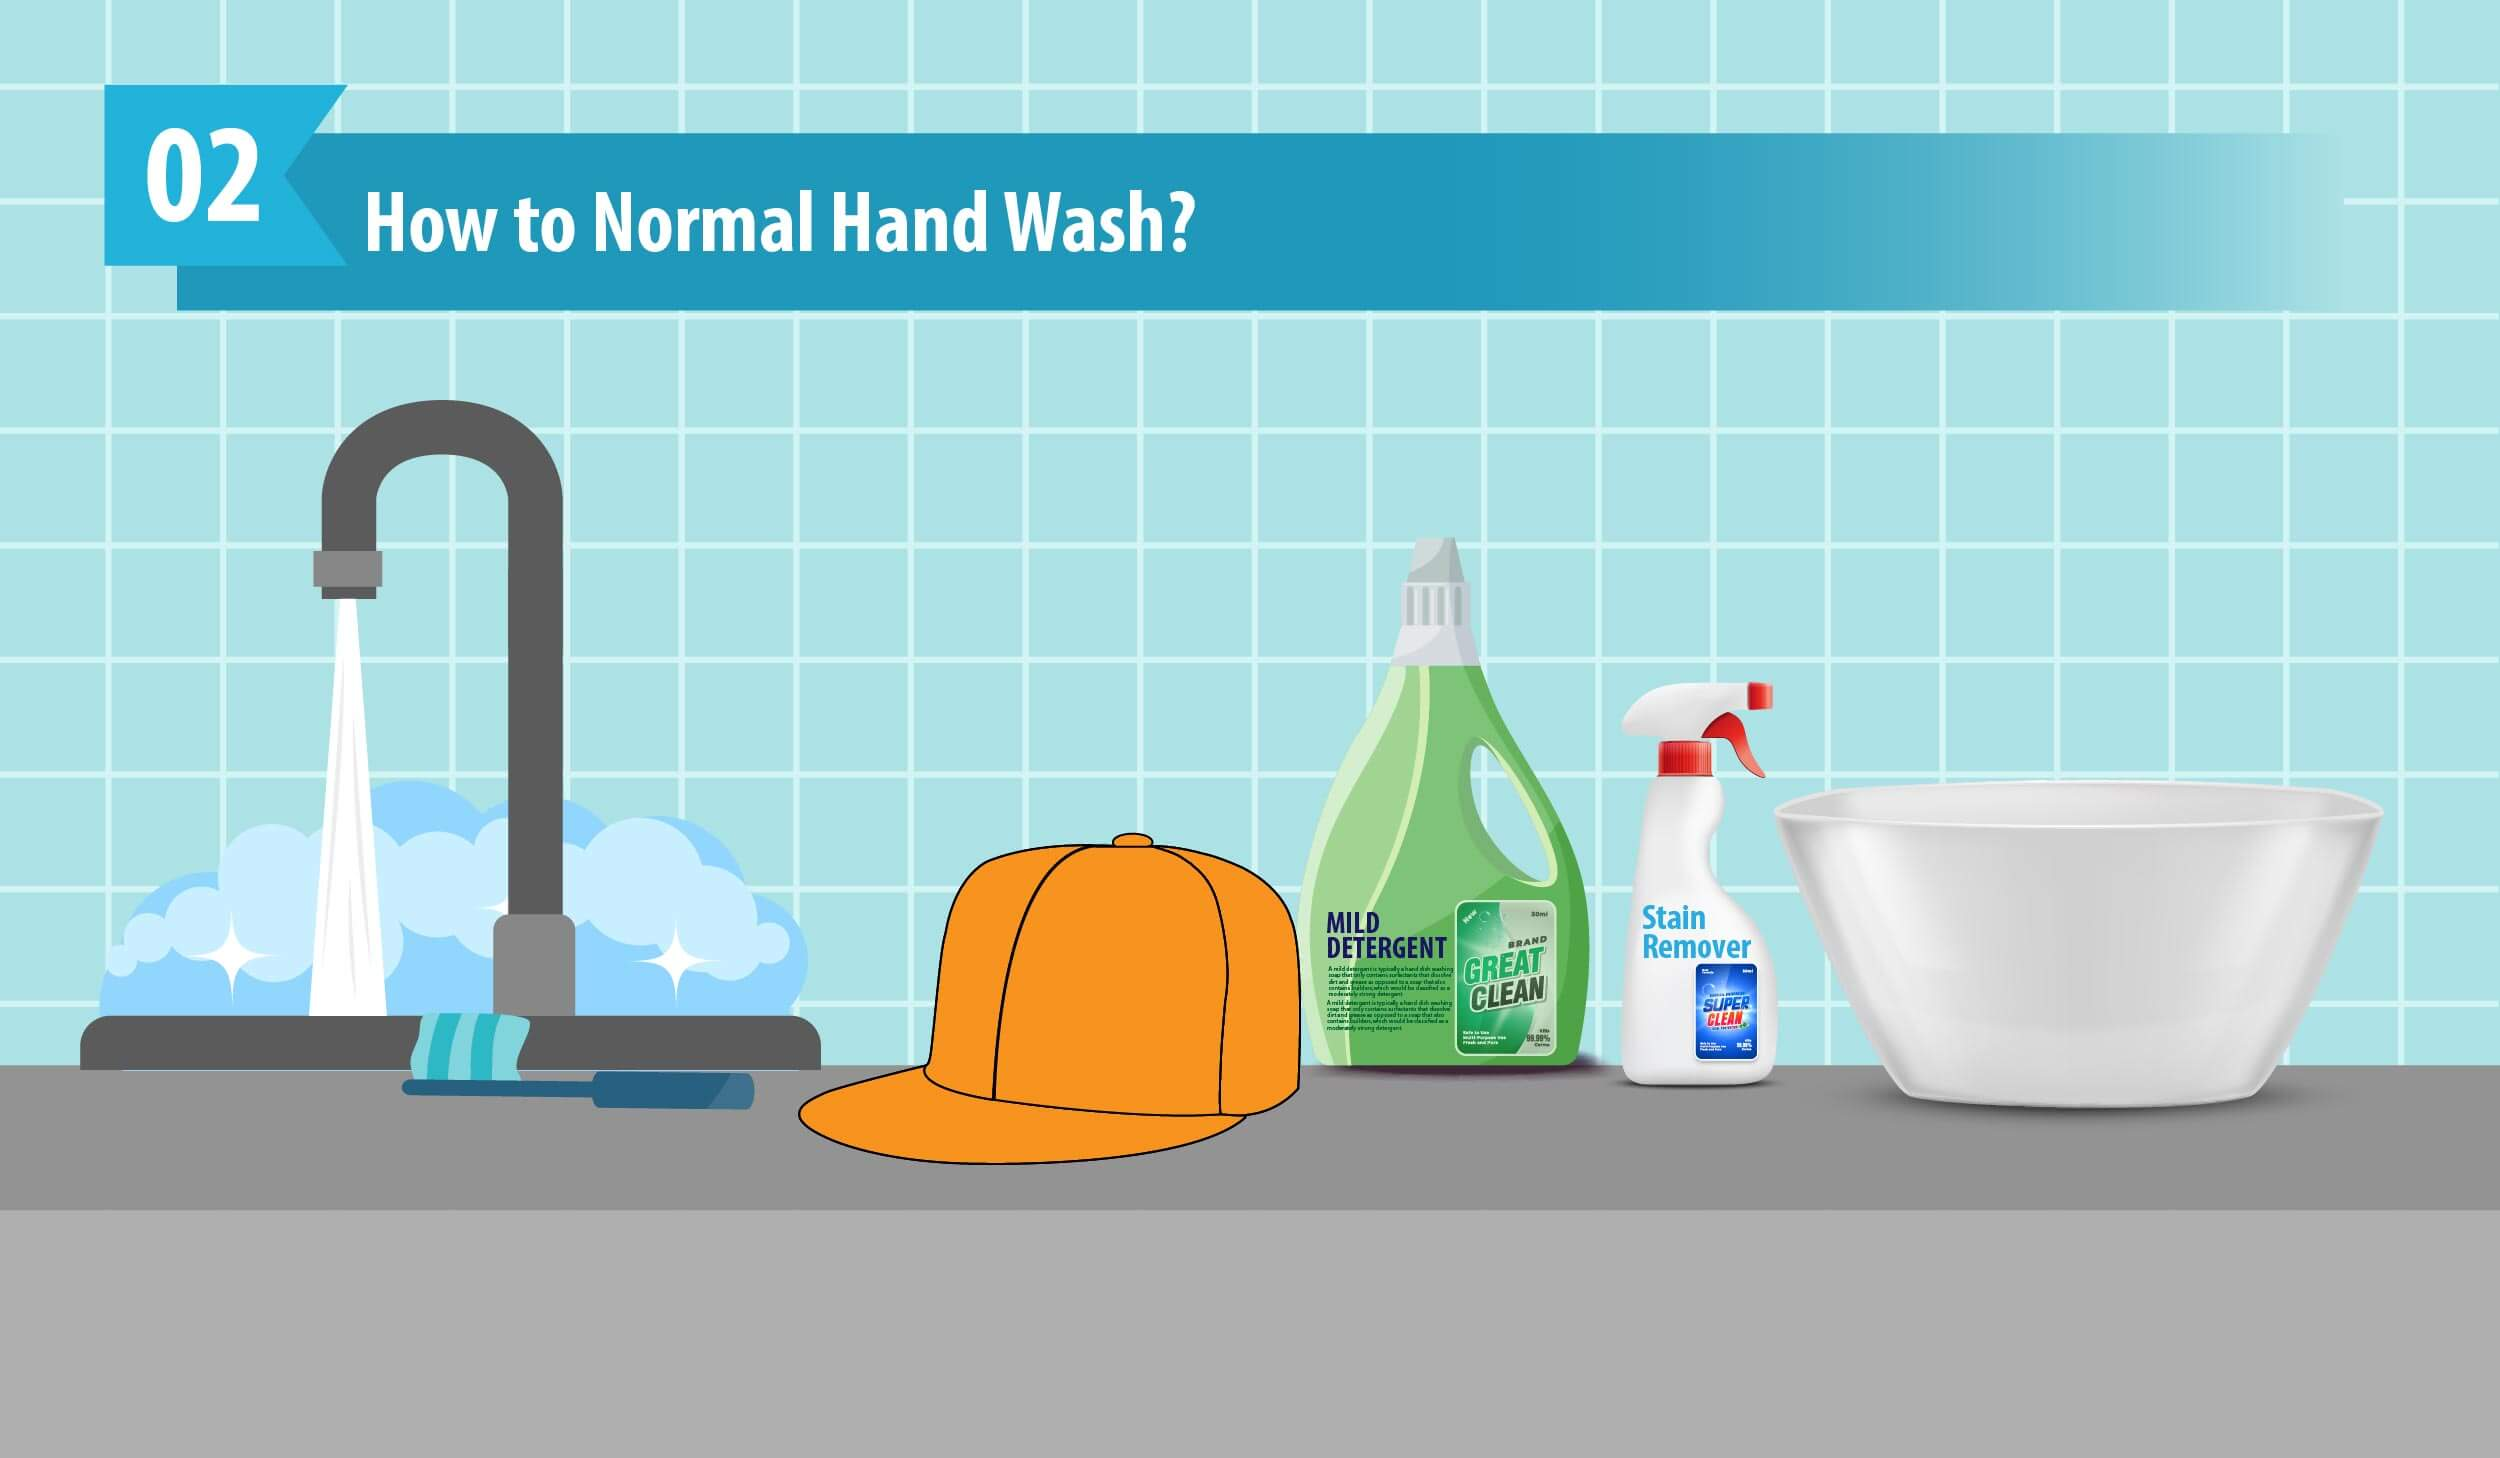 How to Normal Hand Wash